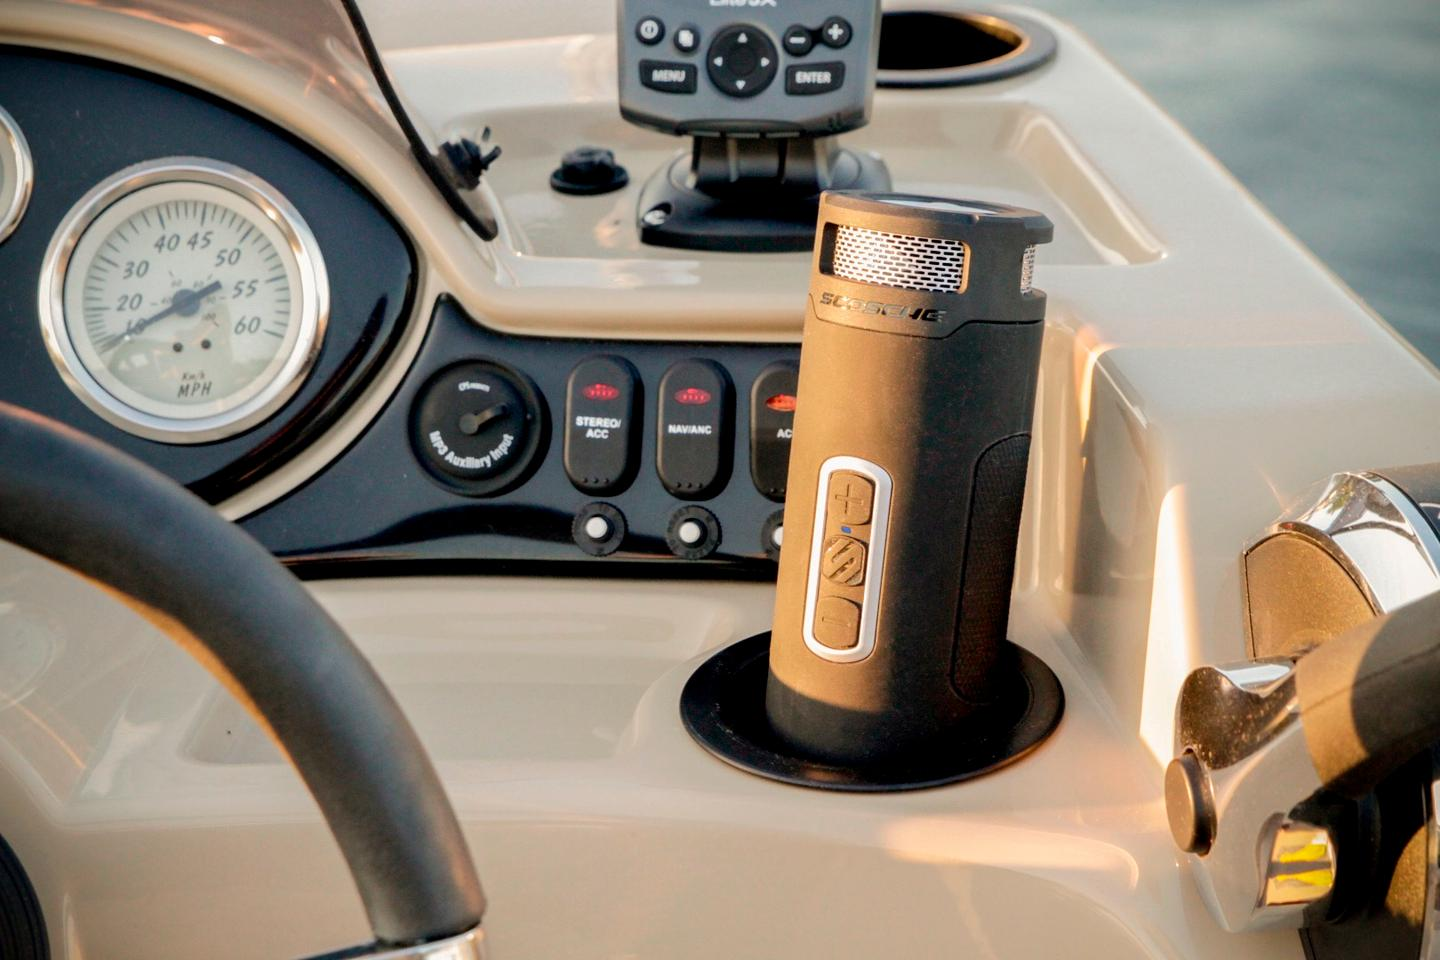 The Scosche BoomBottle+ can fit in most modern vehicle cup holders